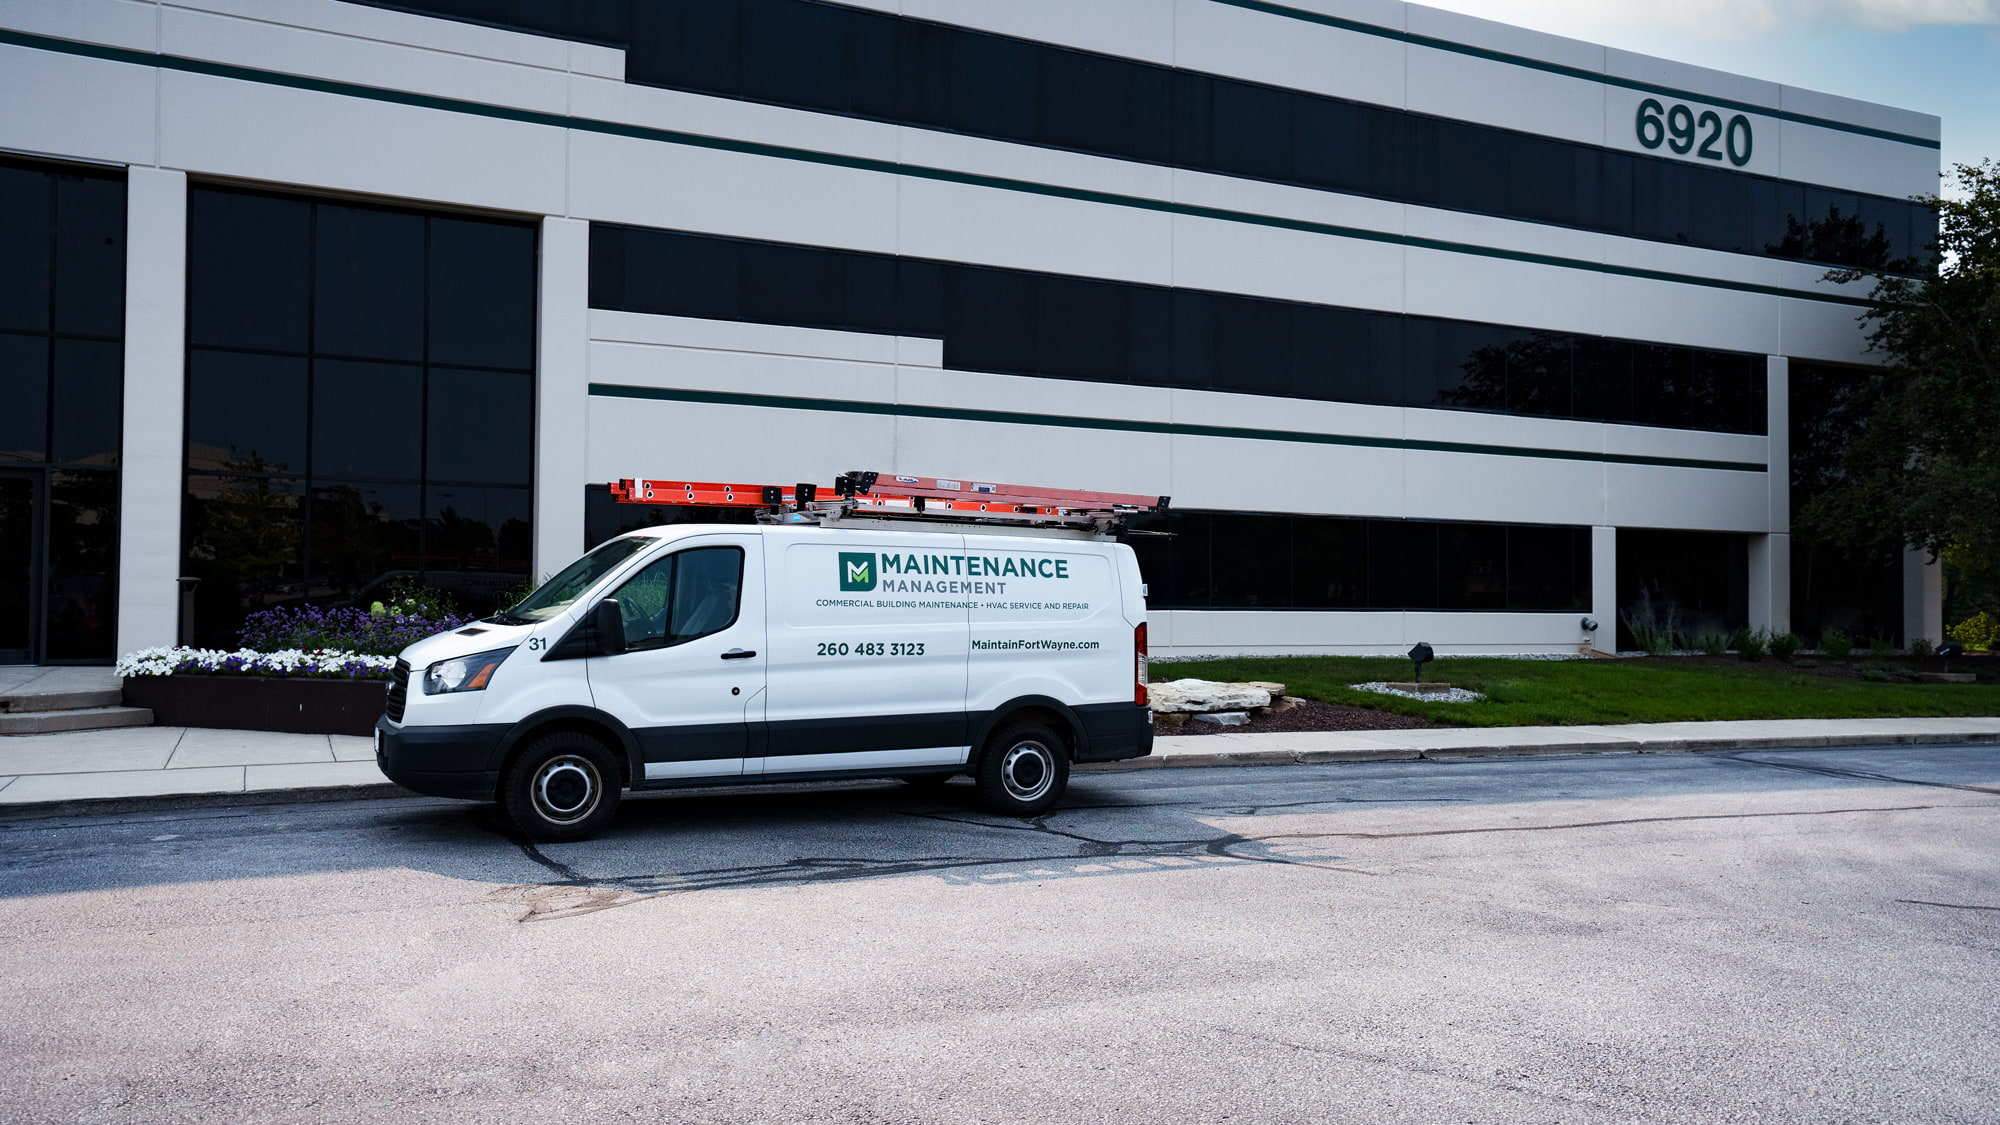 Maintenance Management outsourcing maintenance and HVAC service van in front of multi-tenant office building.